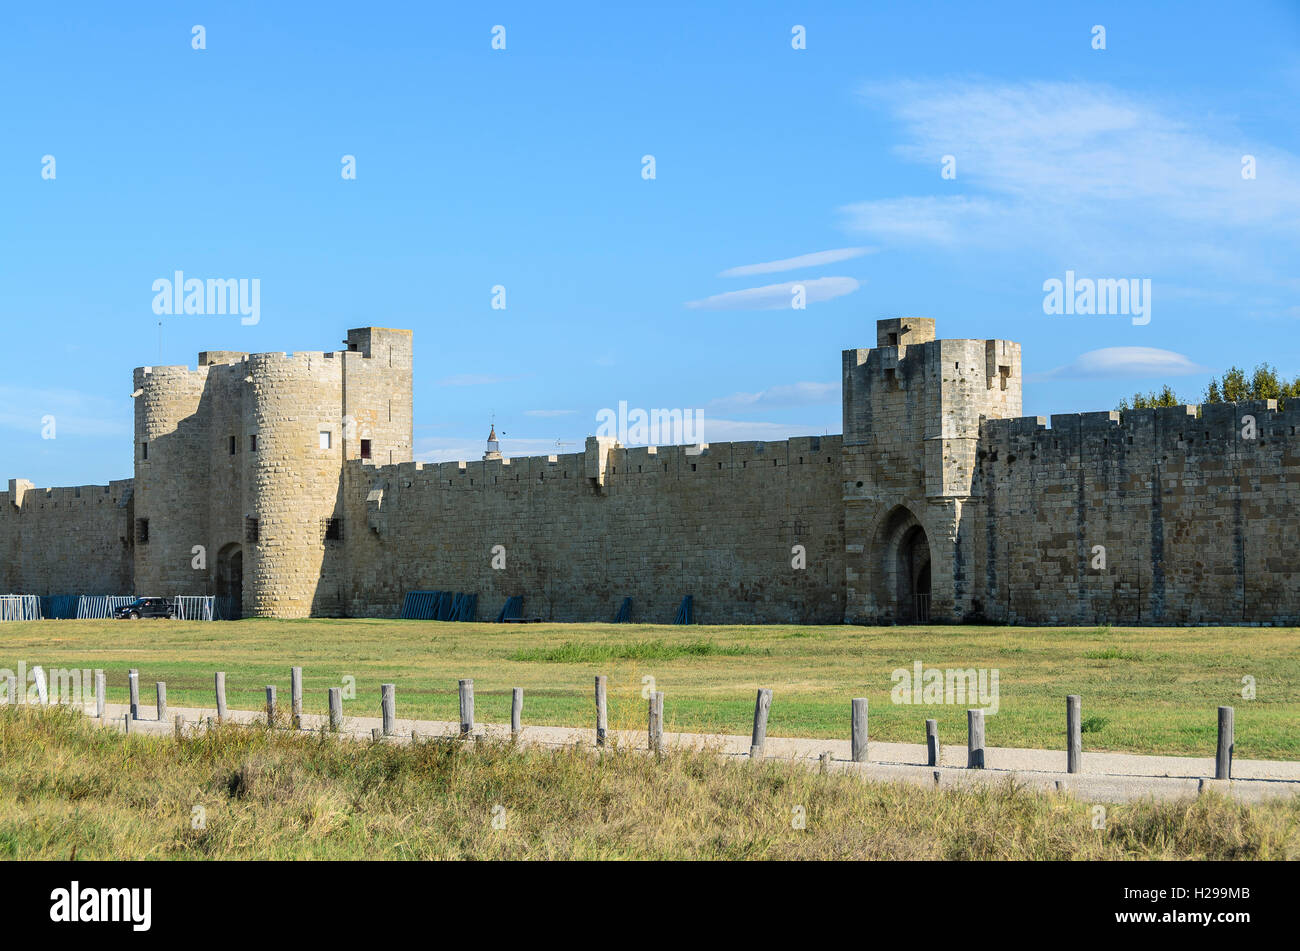 Aigues Mortes, remparts, Gard, France - Stock Image